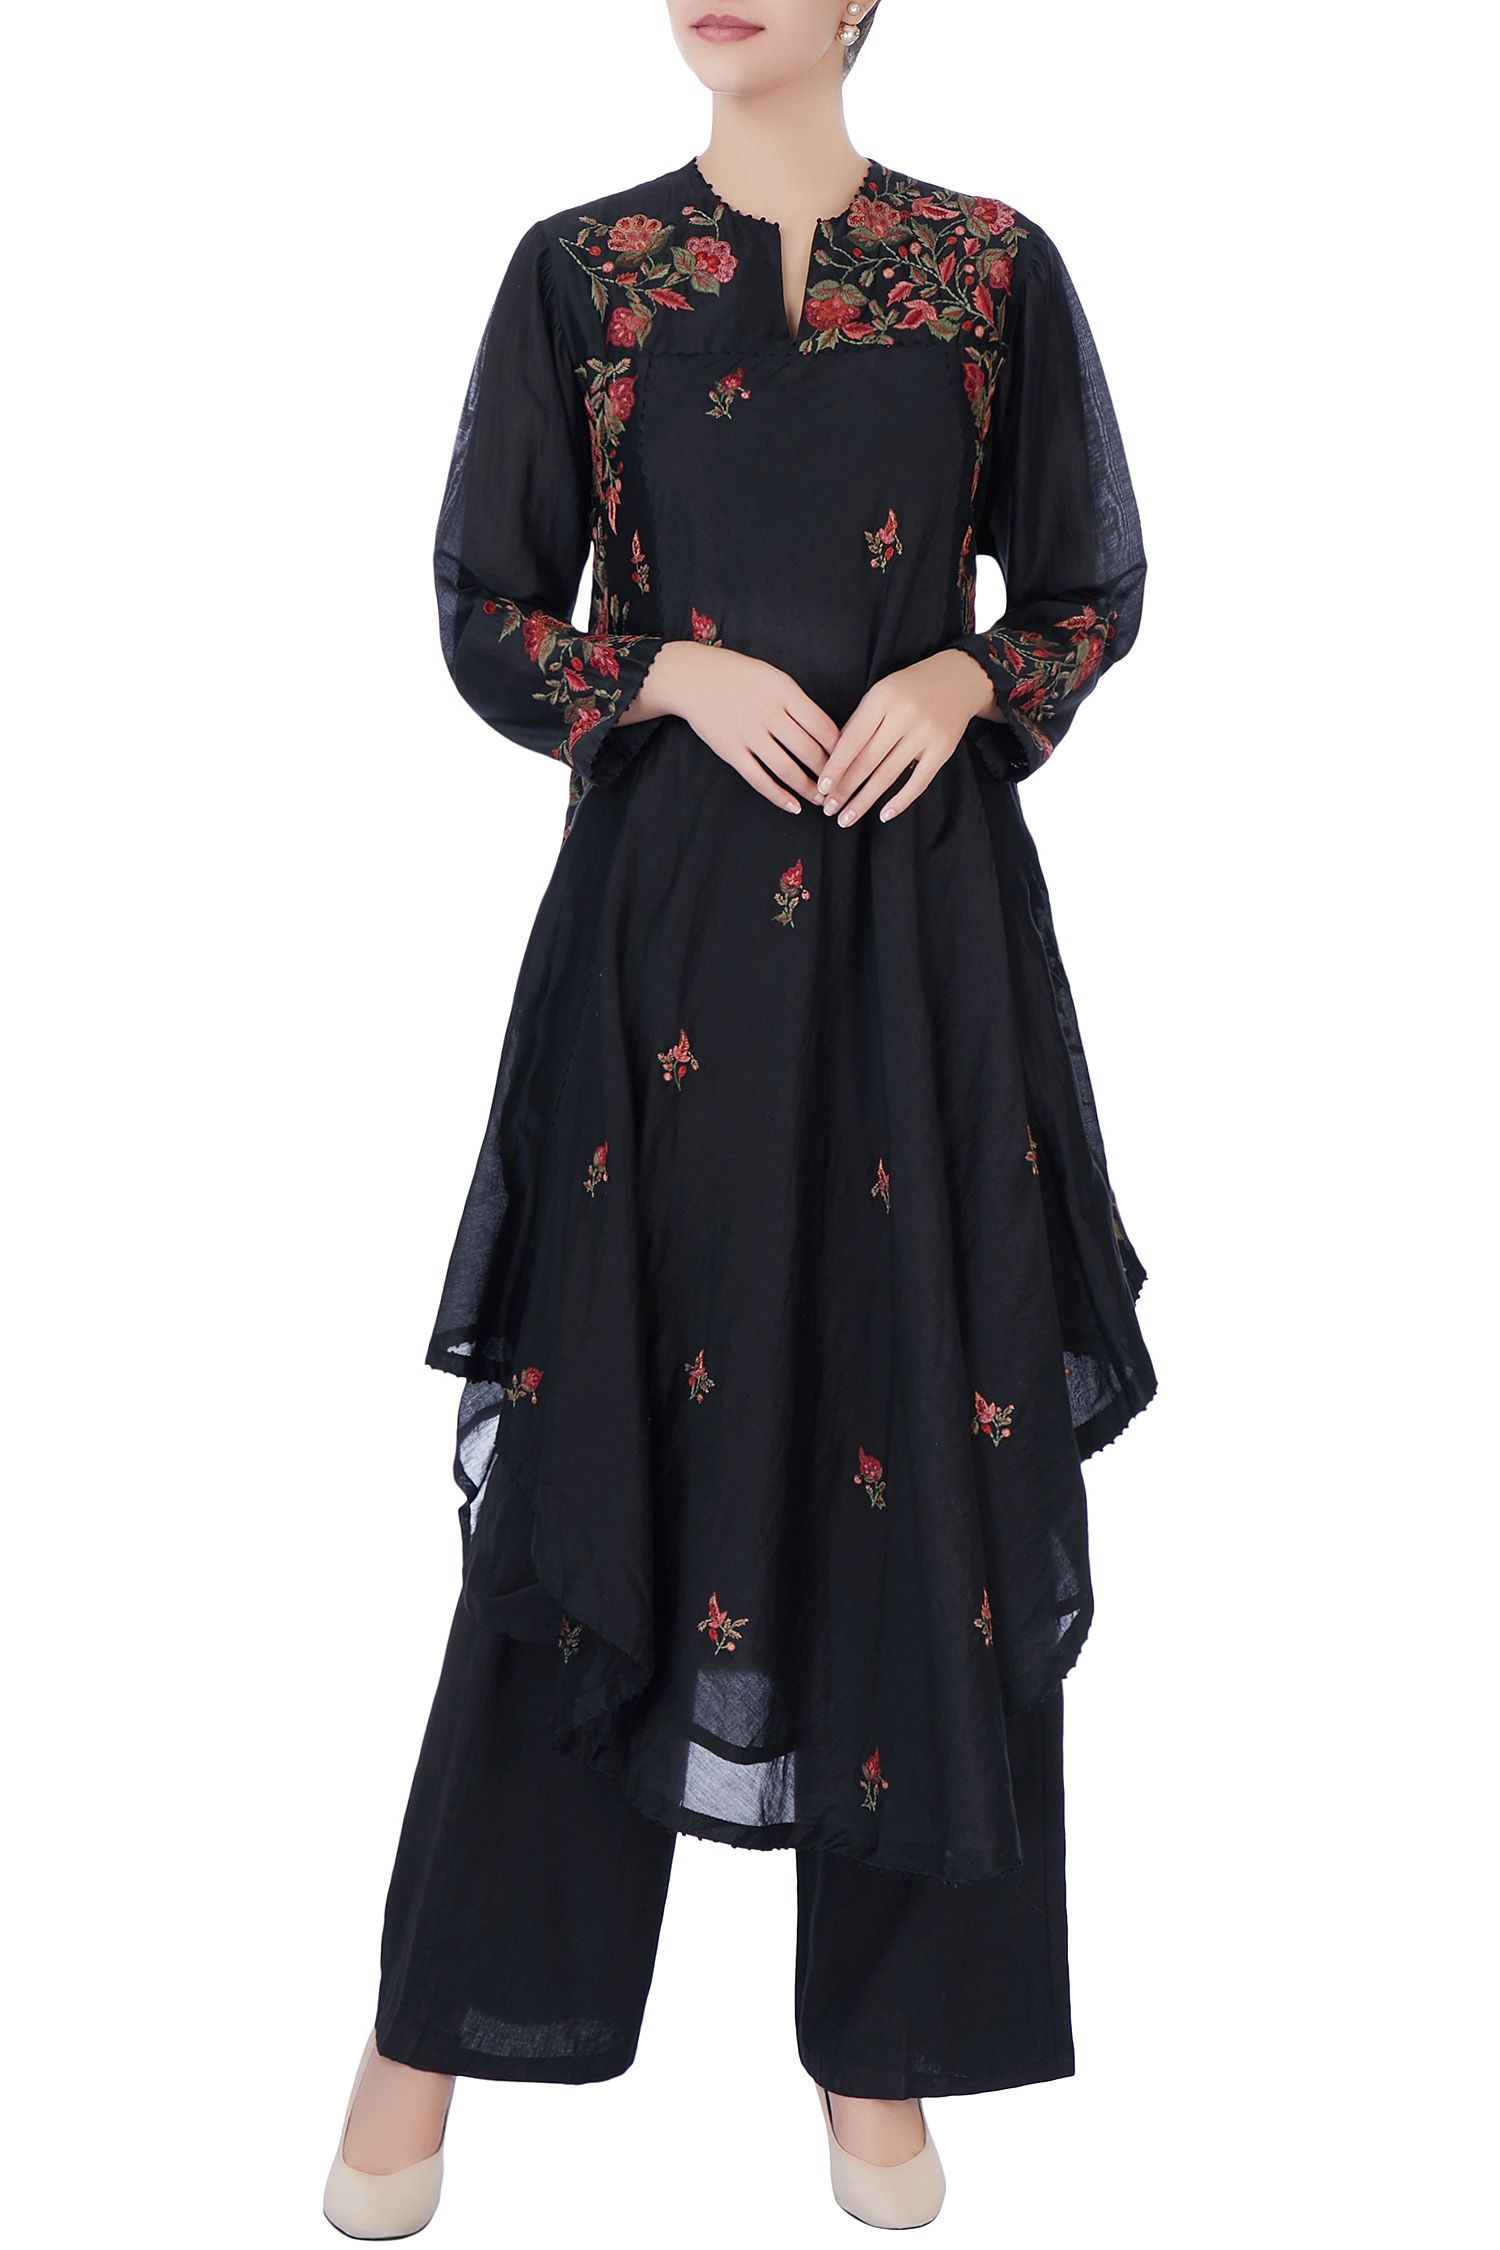 0fddffa75b56 Black asymmetric kurta   Things to wear   Pinterest